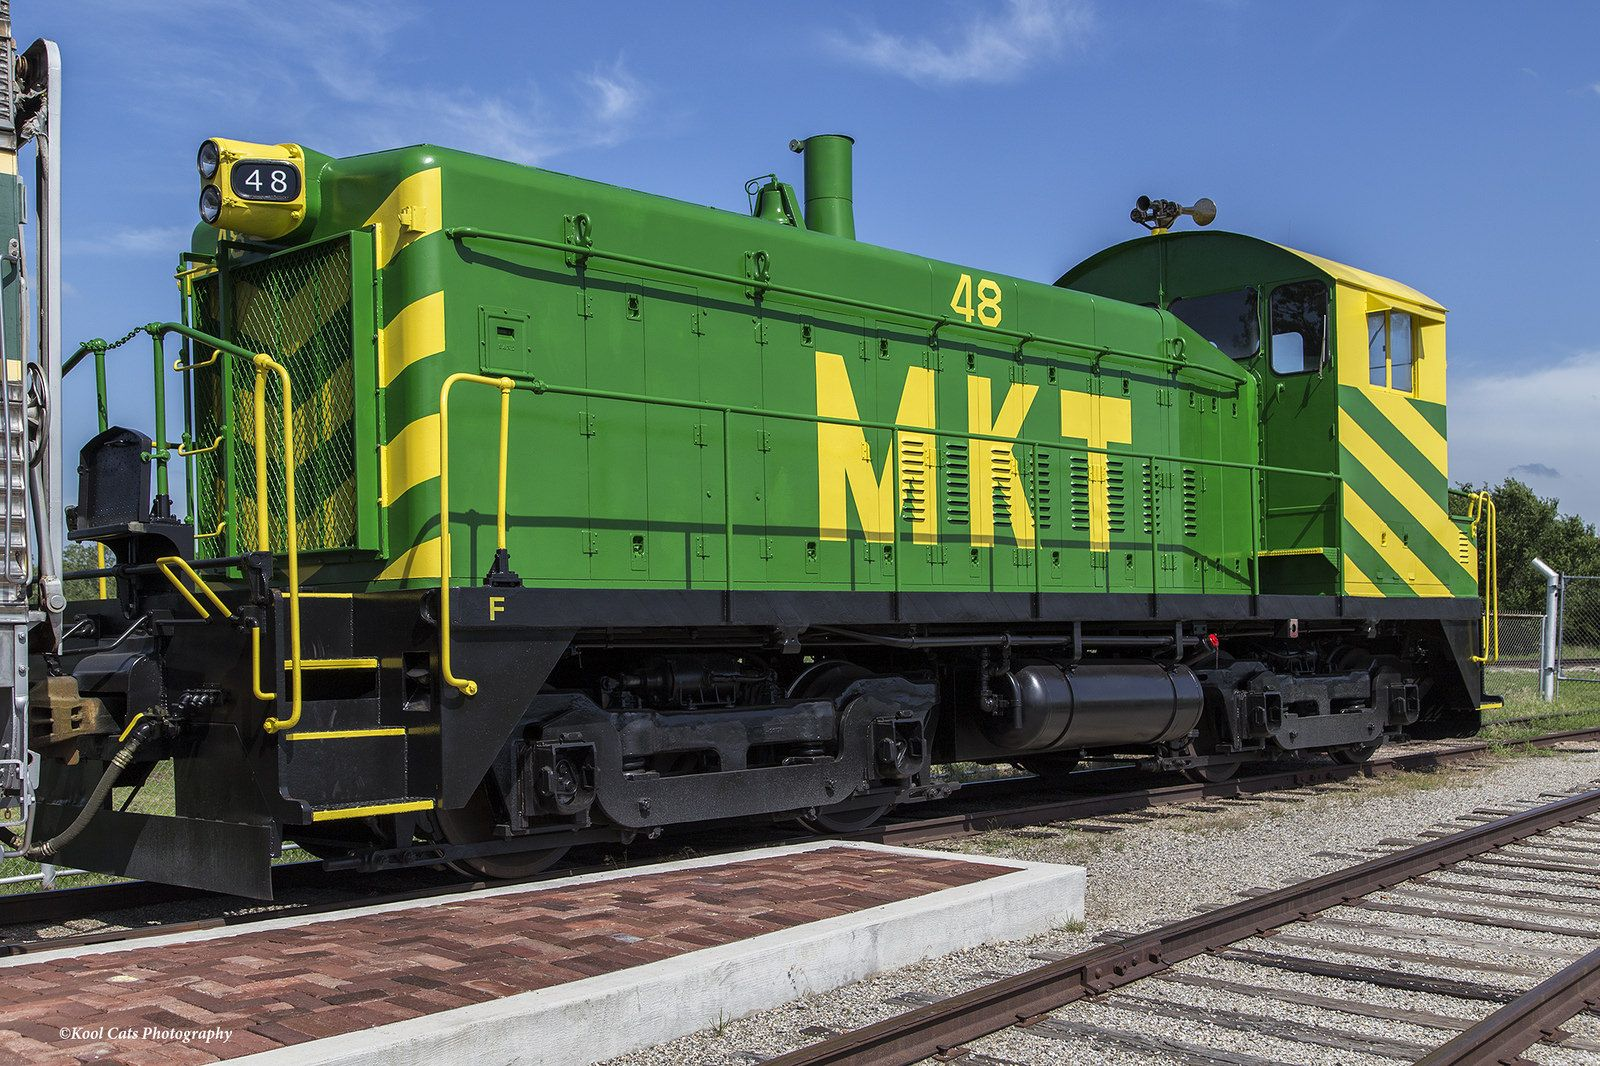 https://flic.kr/p/uXm5hz | MKT Loco No. 48 | Photo taken at the Oklahoma City Railway Museum in Oklahoma. This locomotive was newly restored by volunteers.